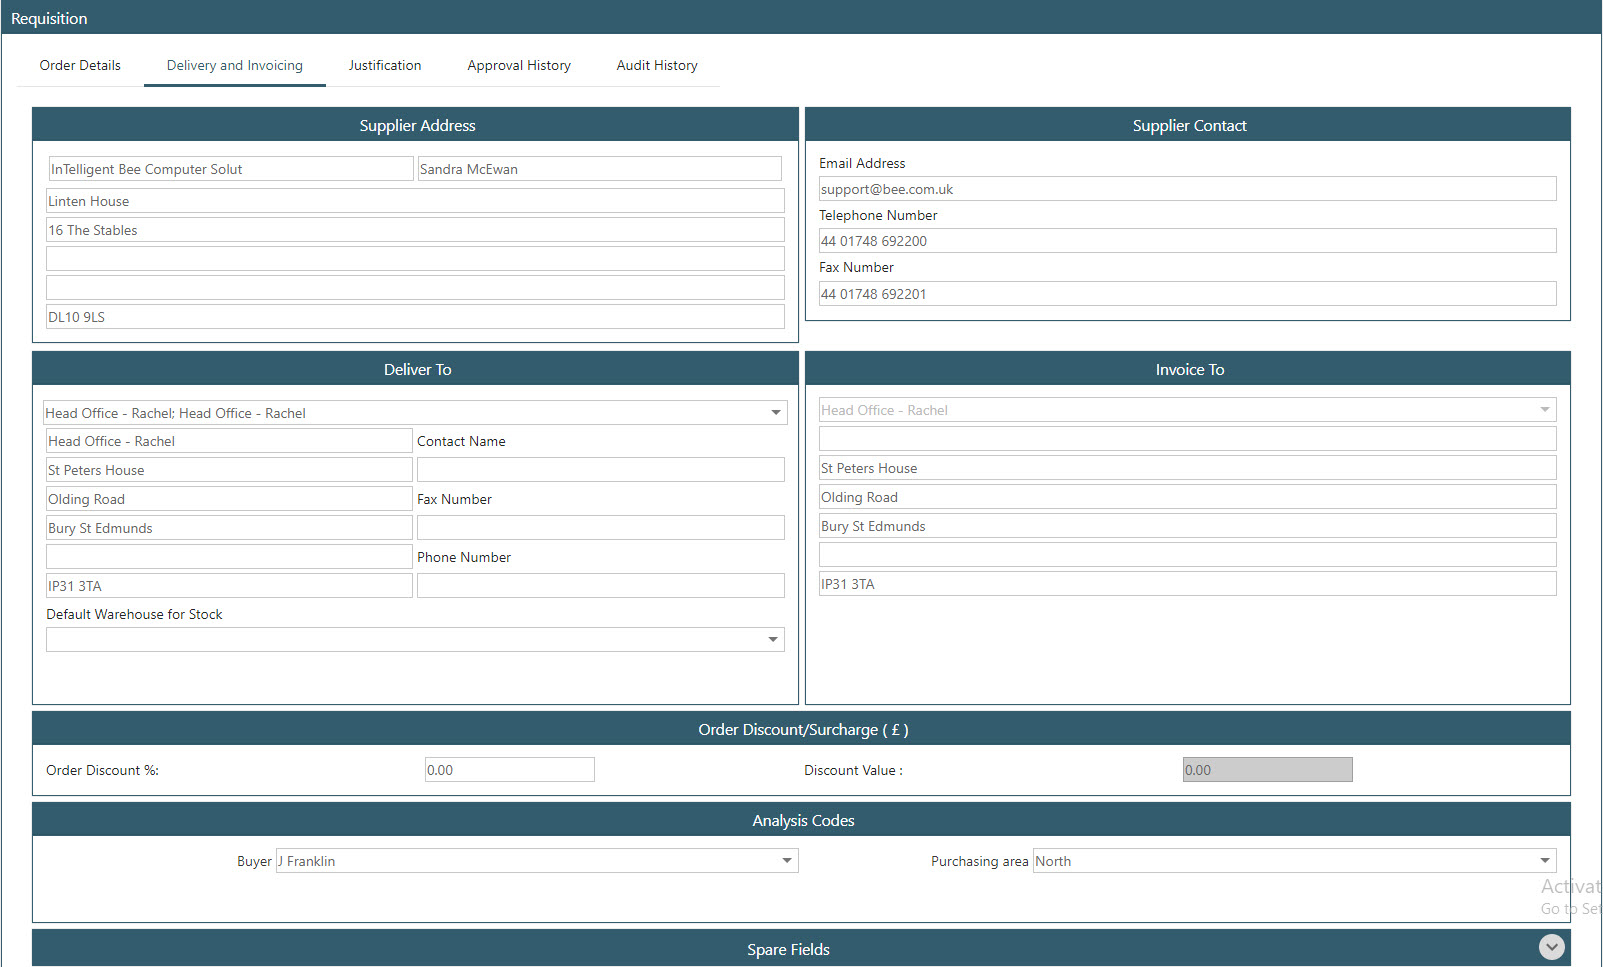 Sicon WAP Purchase Requisitions Help and User Guide - Requisition HUG Section 5.11 Image 1